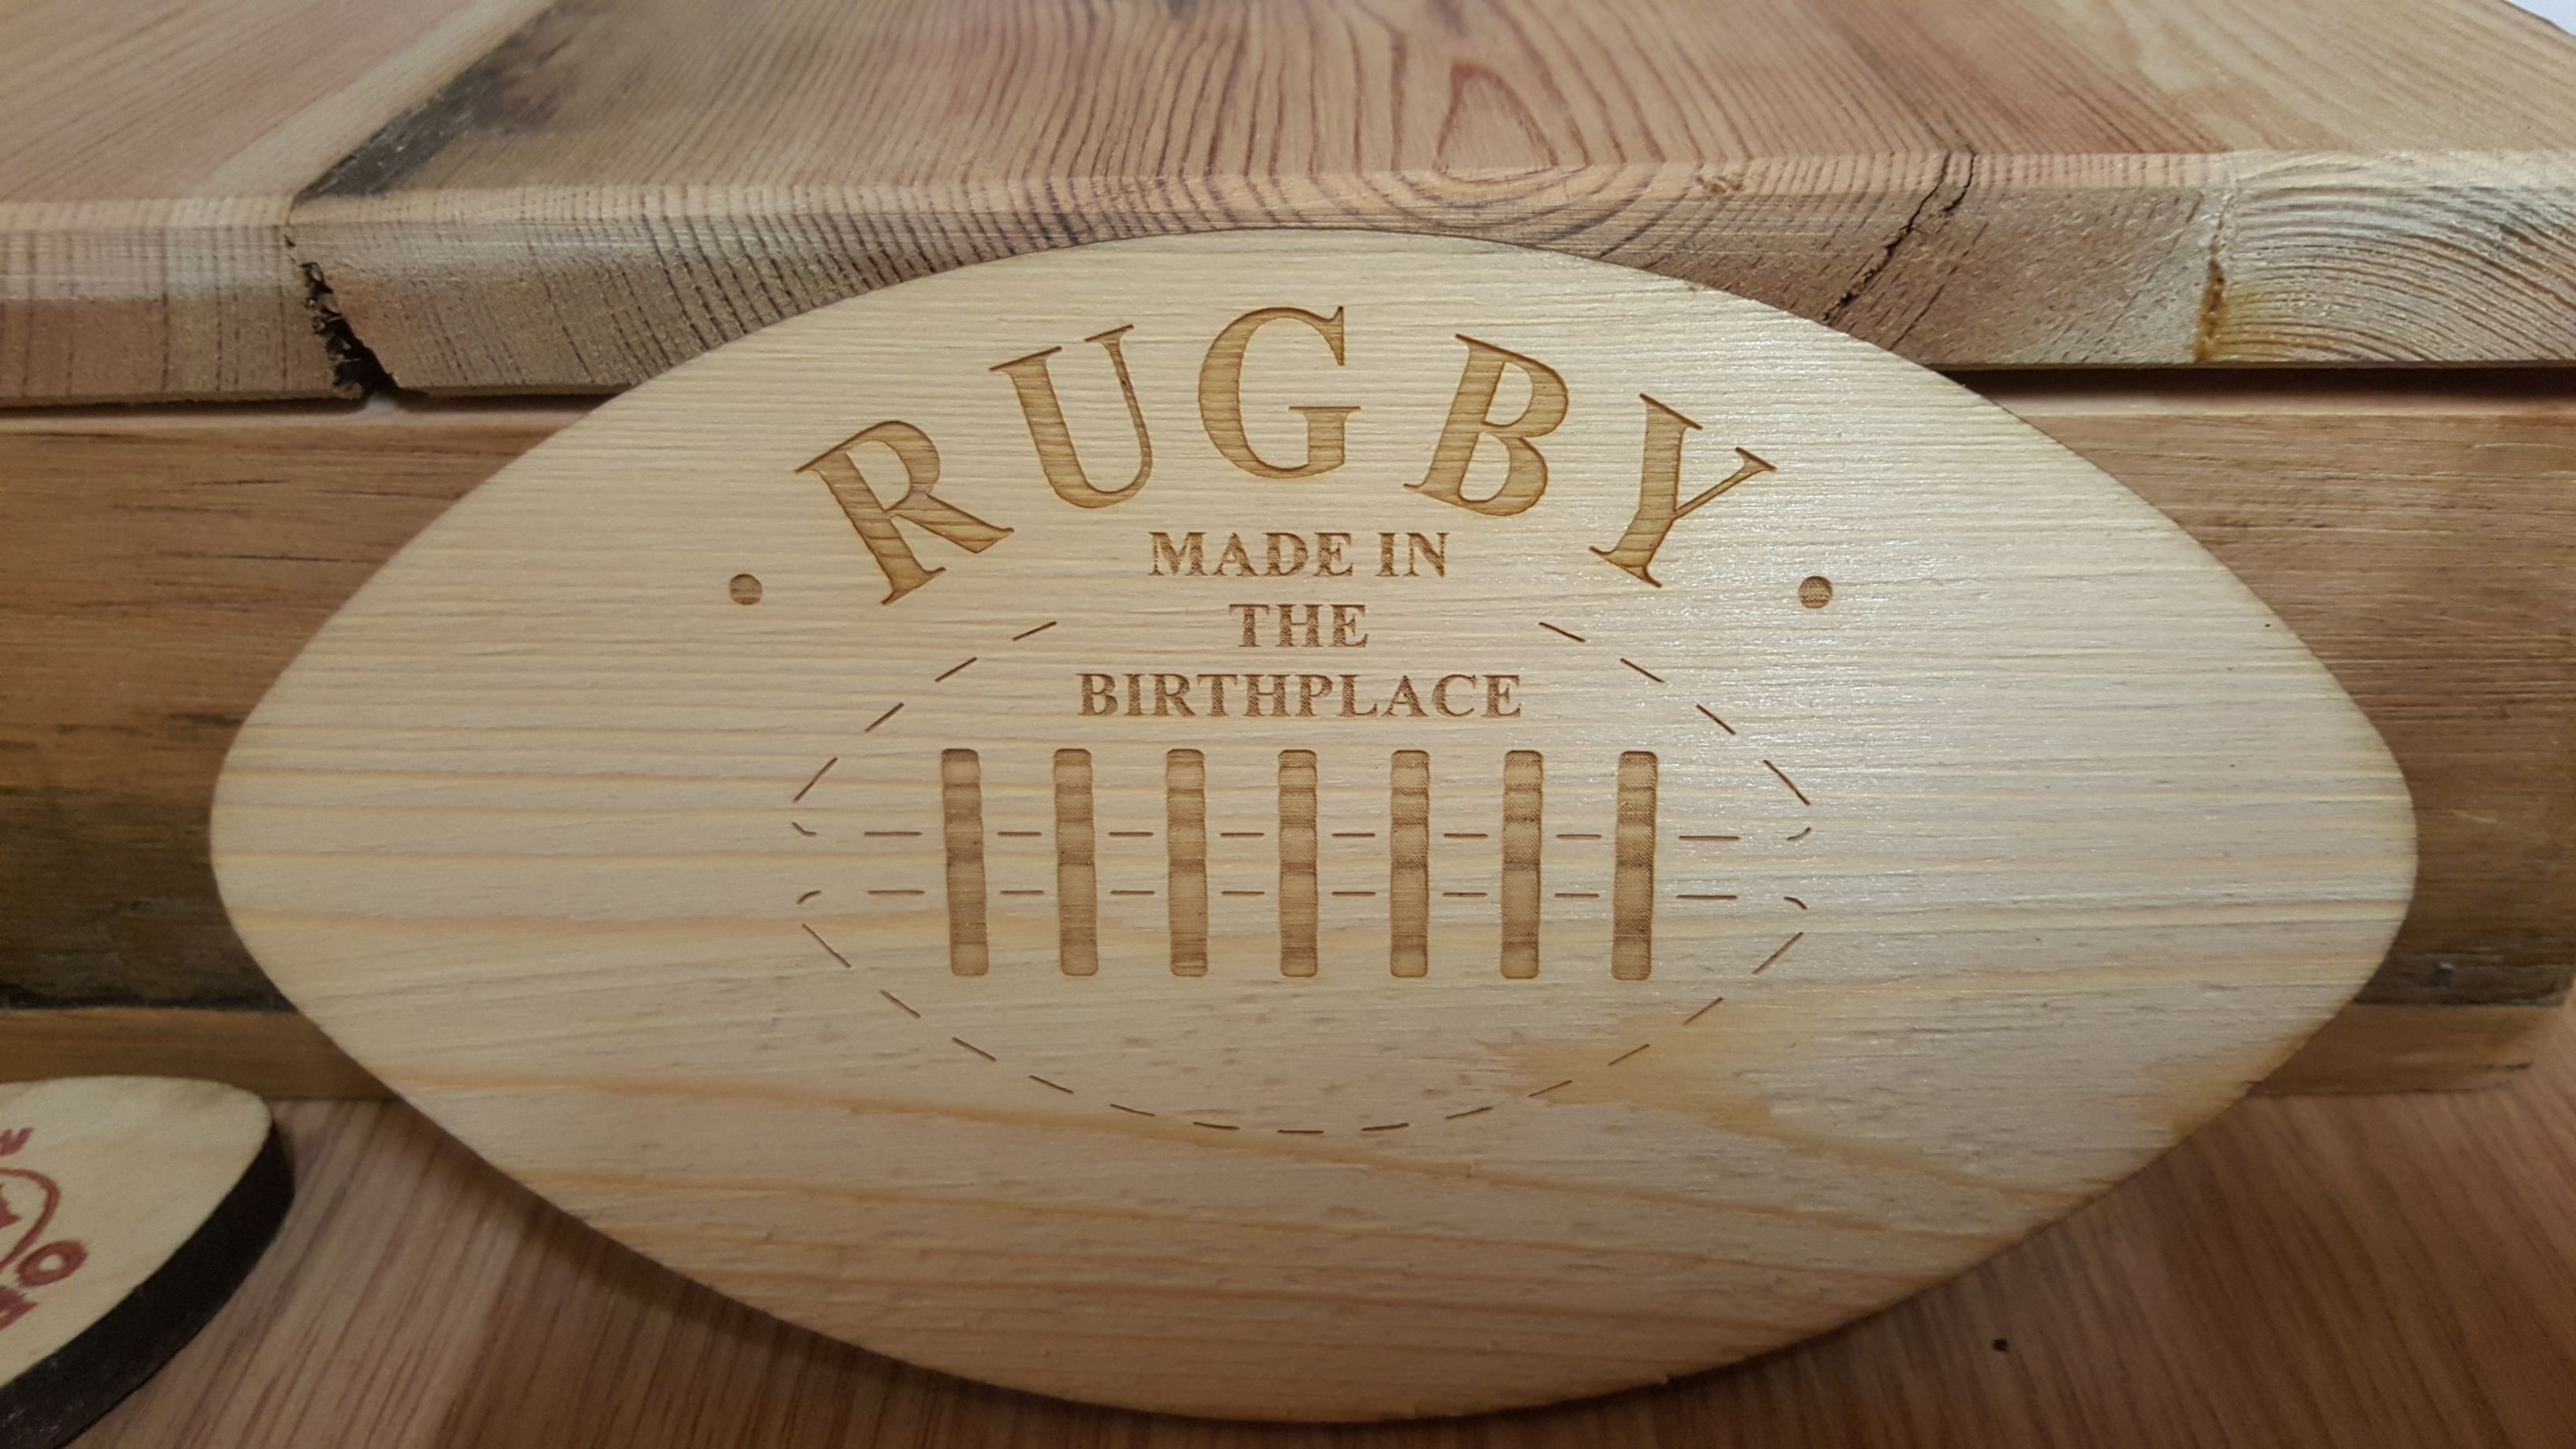 Original Rugby Gifts Unique Rugby Gifts Made In And Brought To You From The Birthplace Of Rugby Football Rugby England Find Out More At Www Origi アクセサリー